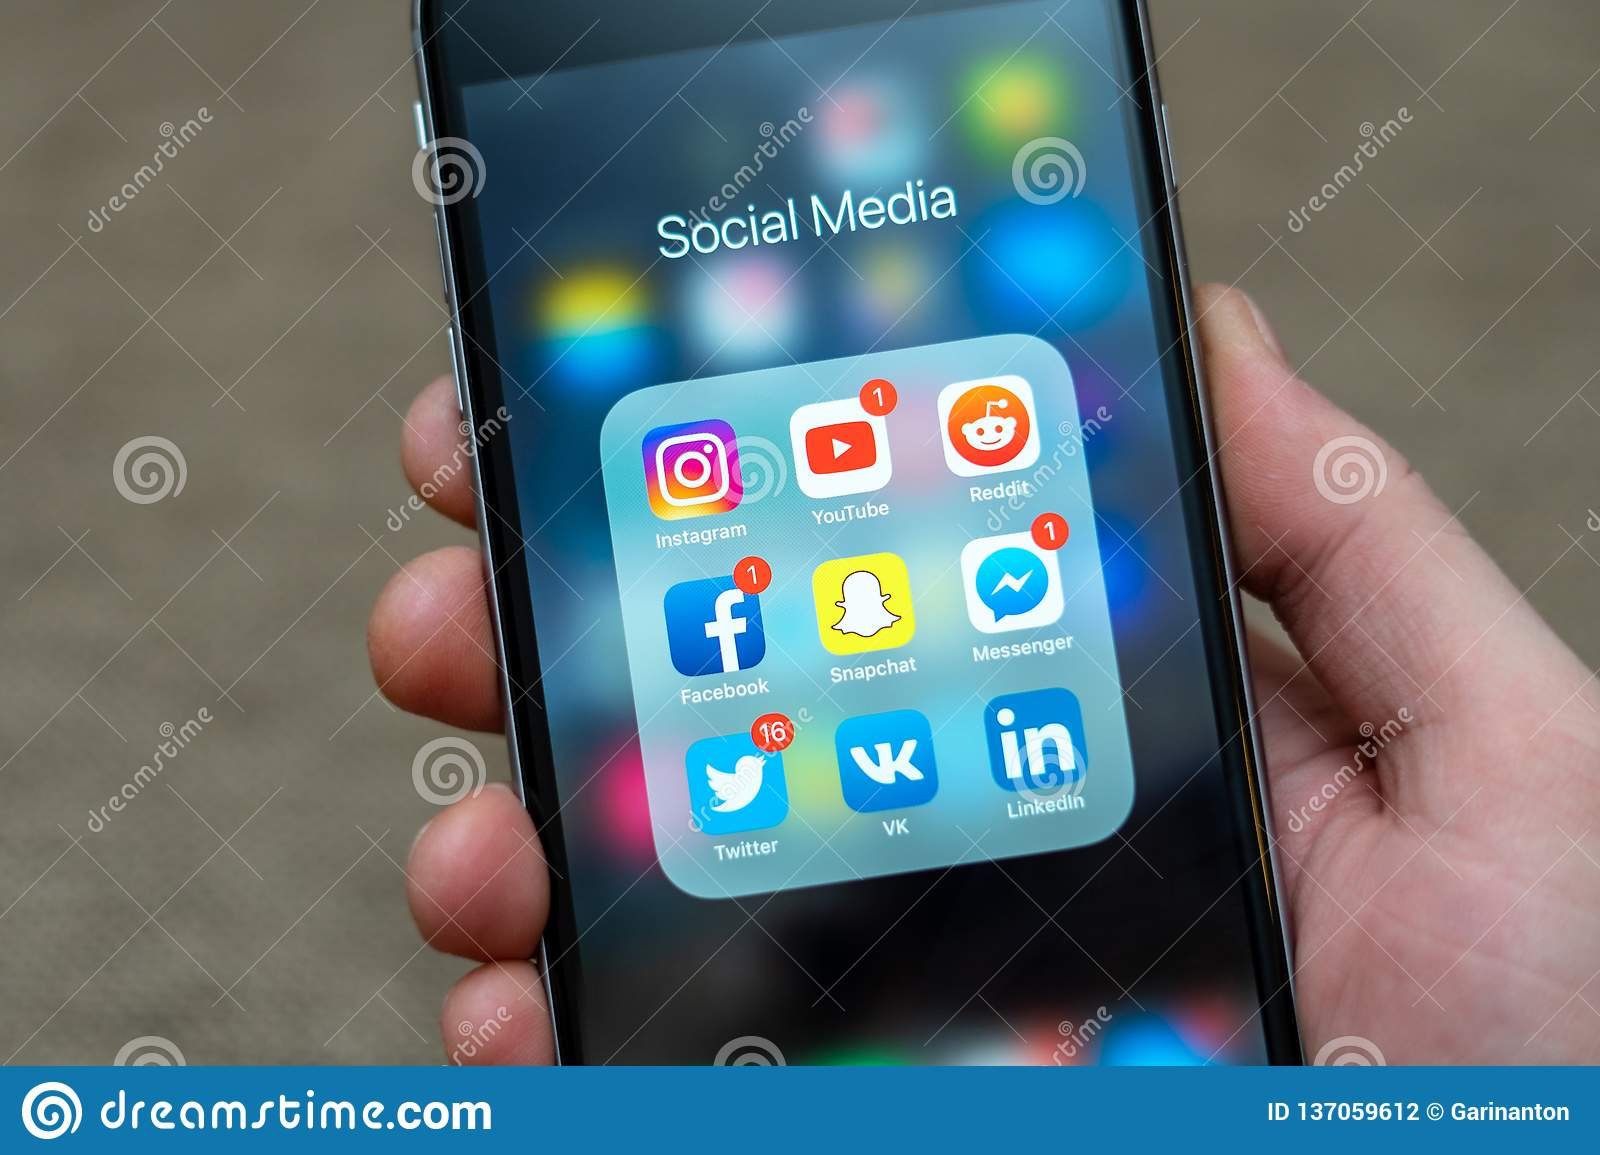 Social Media App Icons Displayed On Apple IPhone, Some Icons With